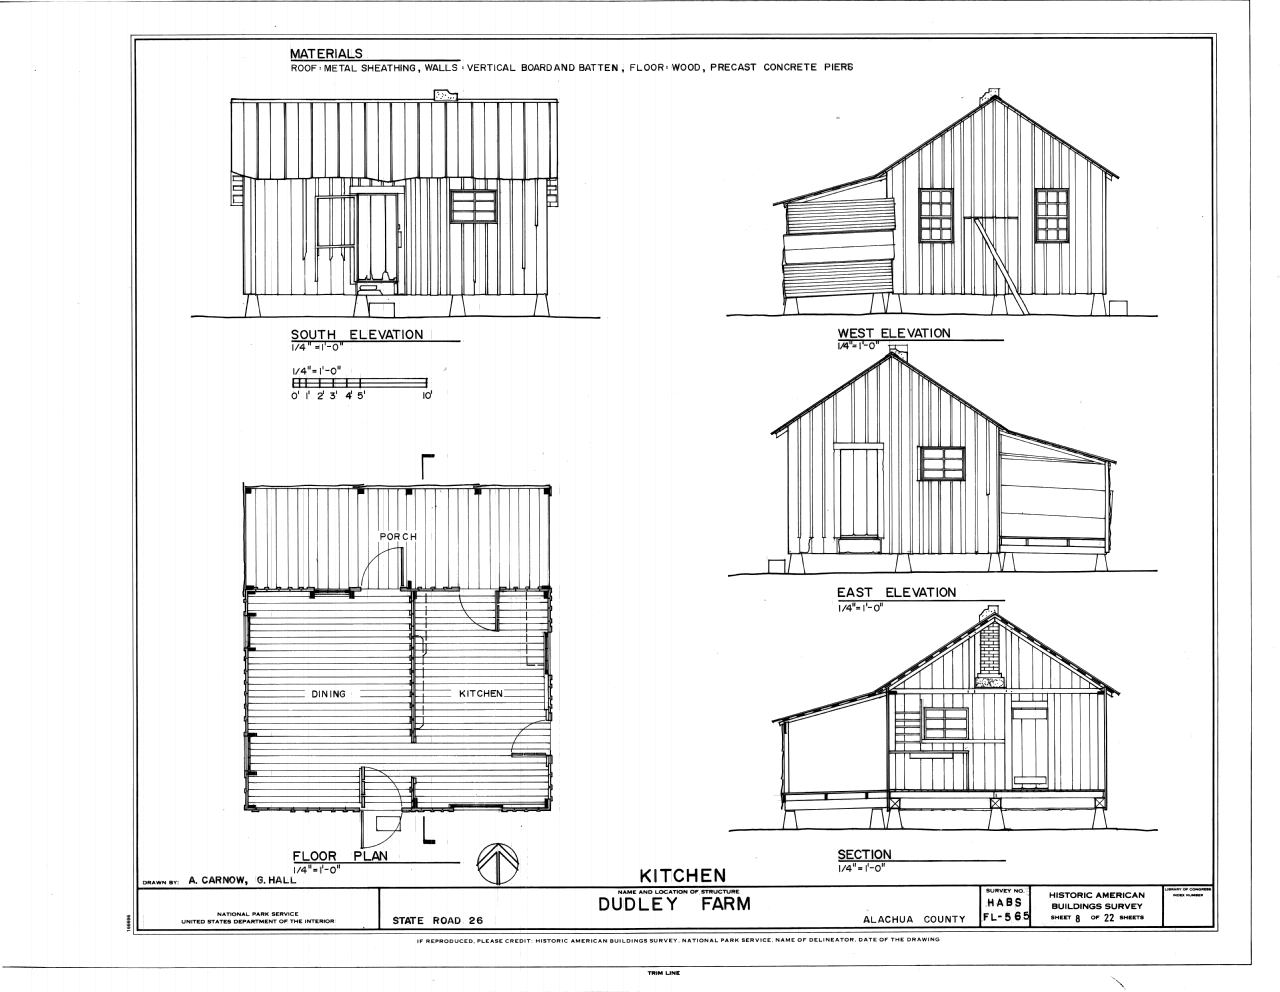 Plan Section Elevation Examples : File kitchen elevations floor plan and section dudley